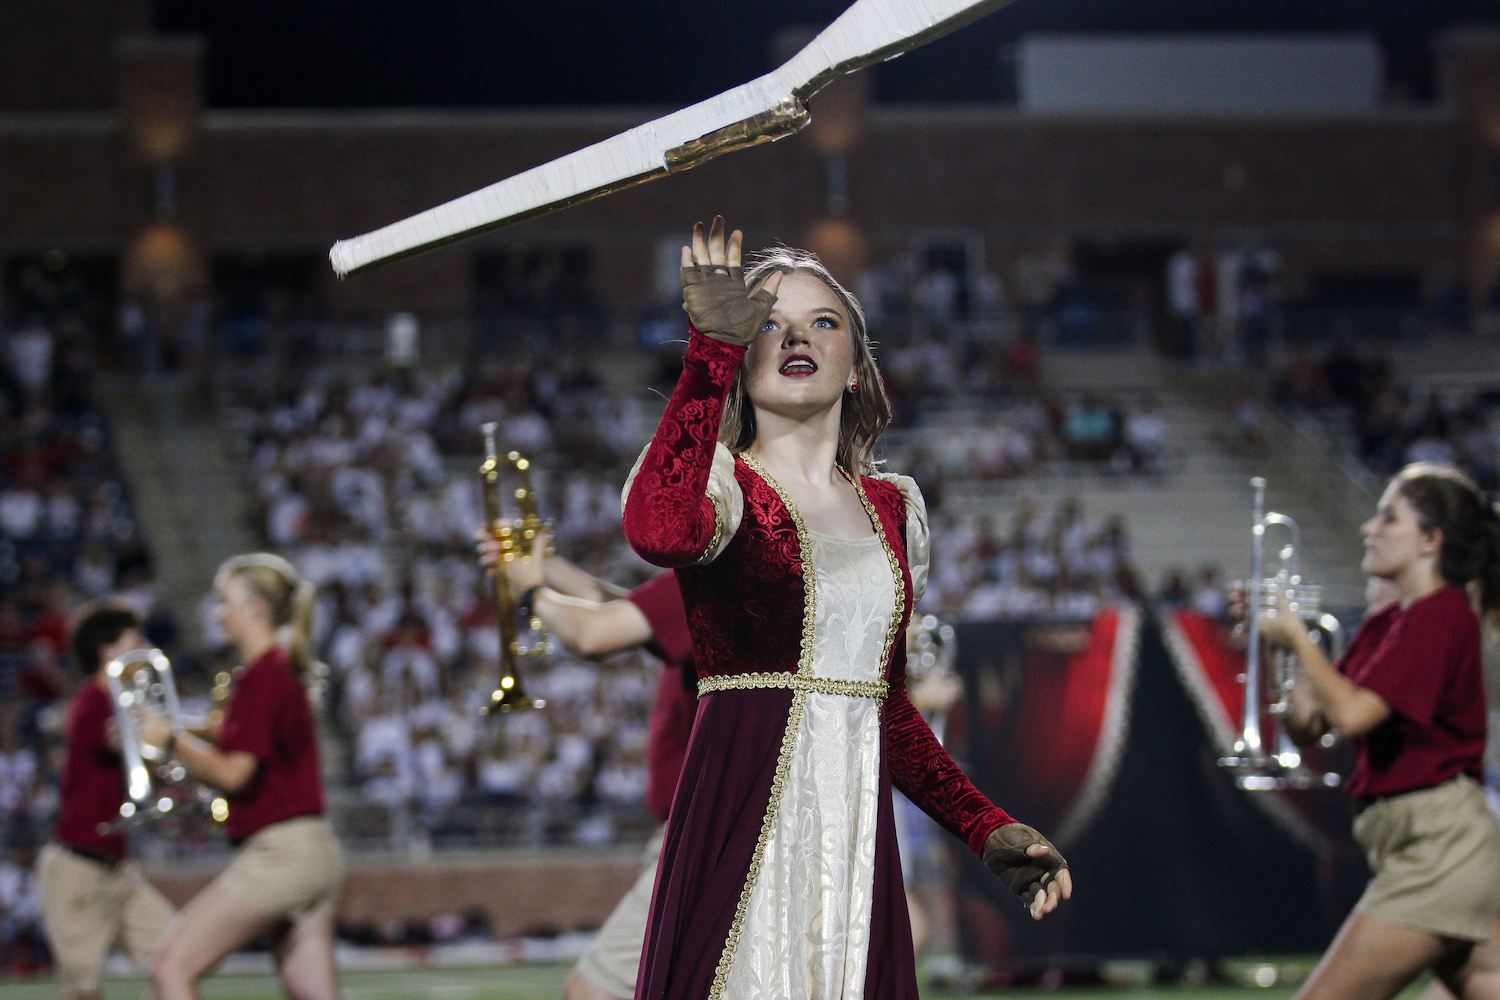 Sophomore+Mackenzie+Miller+twirls+her+rifle+as+the+band+begins+to+encircle+the+color+guard+as+part+of+their+show%2C+Juliet.+